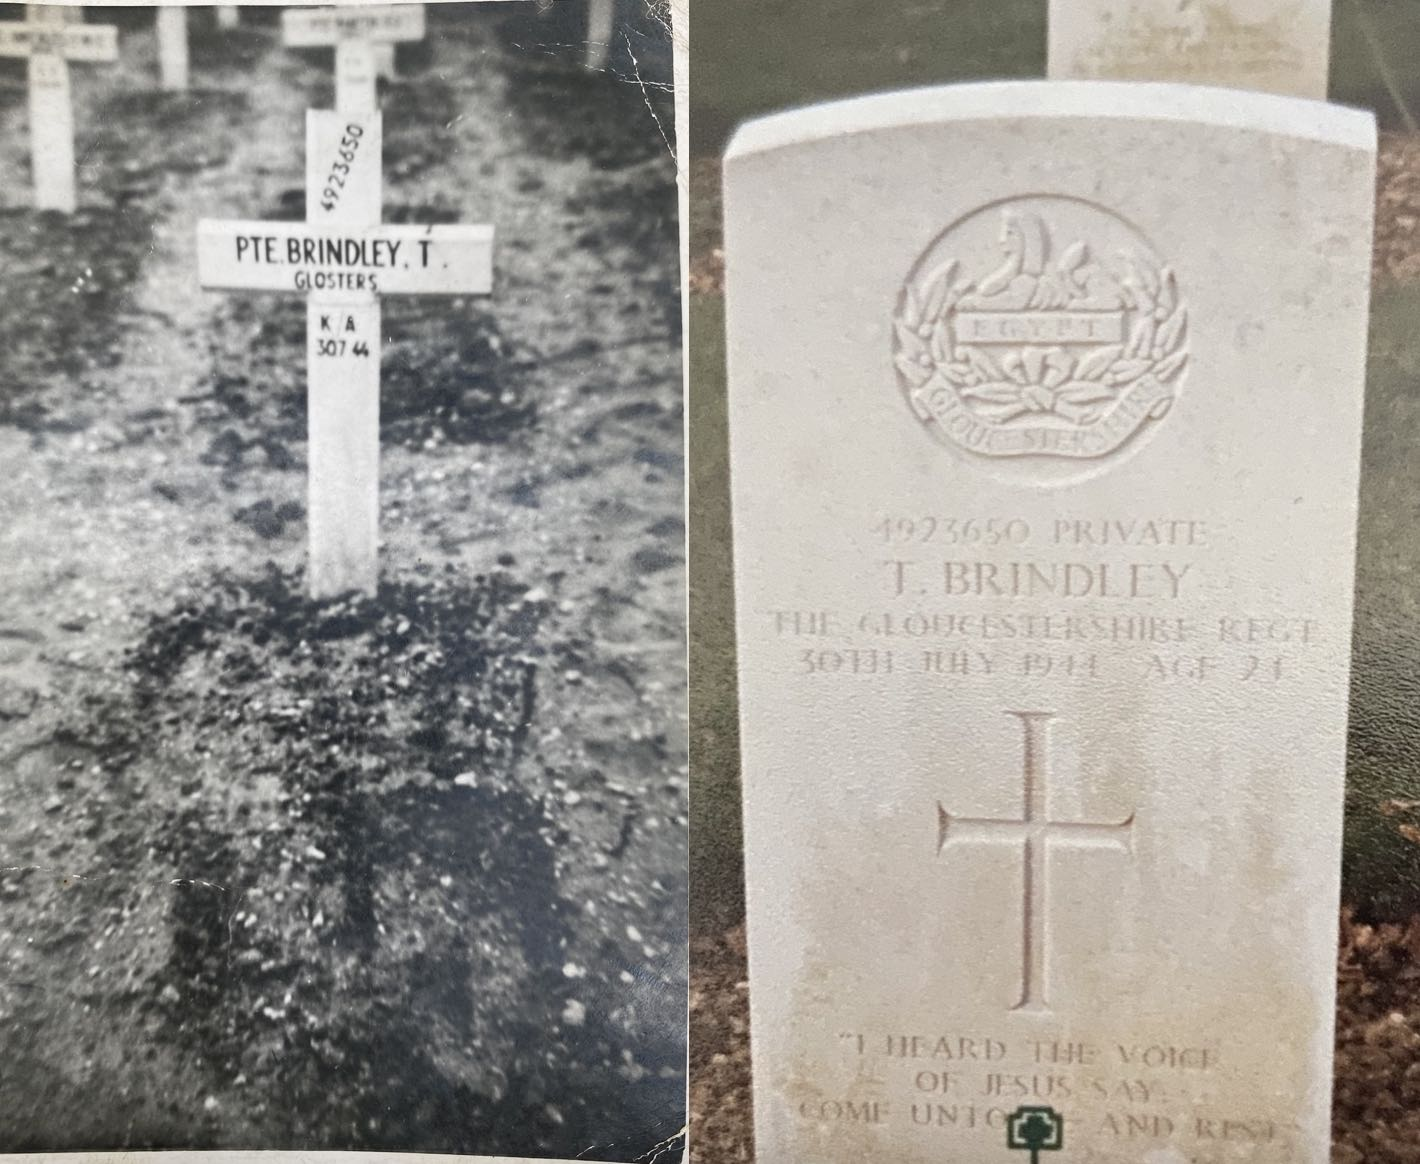 Two pictures - archive of temporary grave marking with cross and modern day gravestone